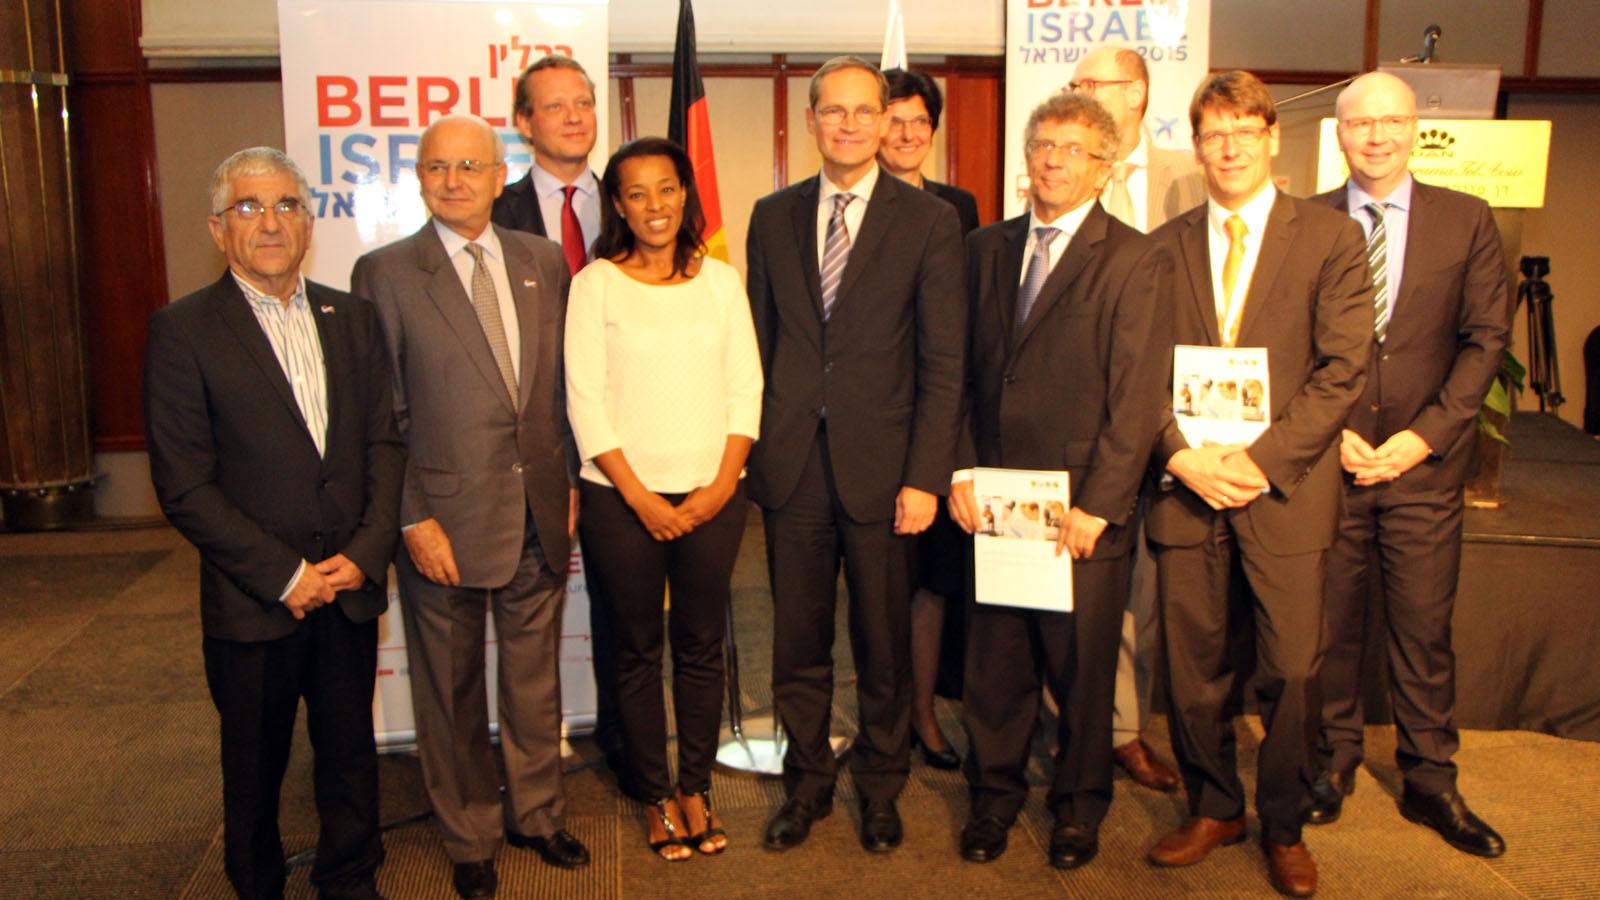 Tel Aviv and Berlin representatives sign new startup exchange program. Photo courtesy of Tel Aviv Municipality